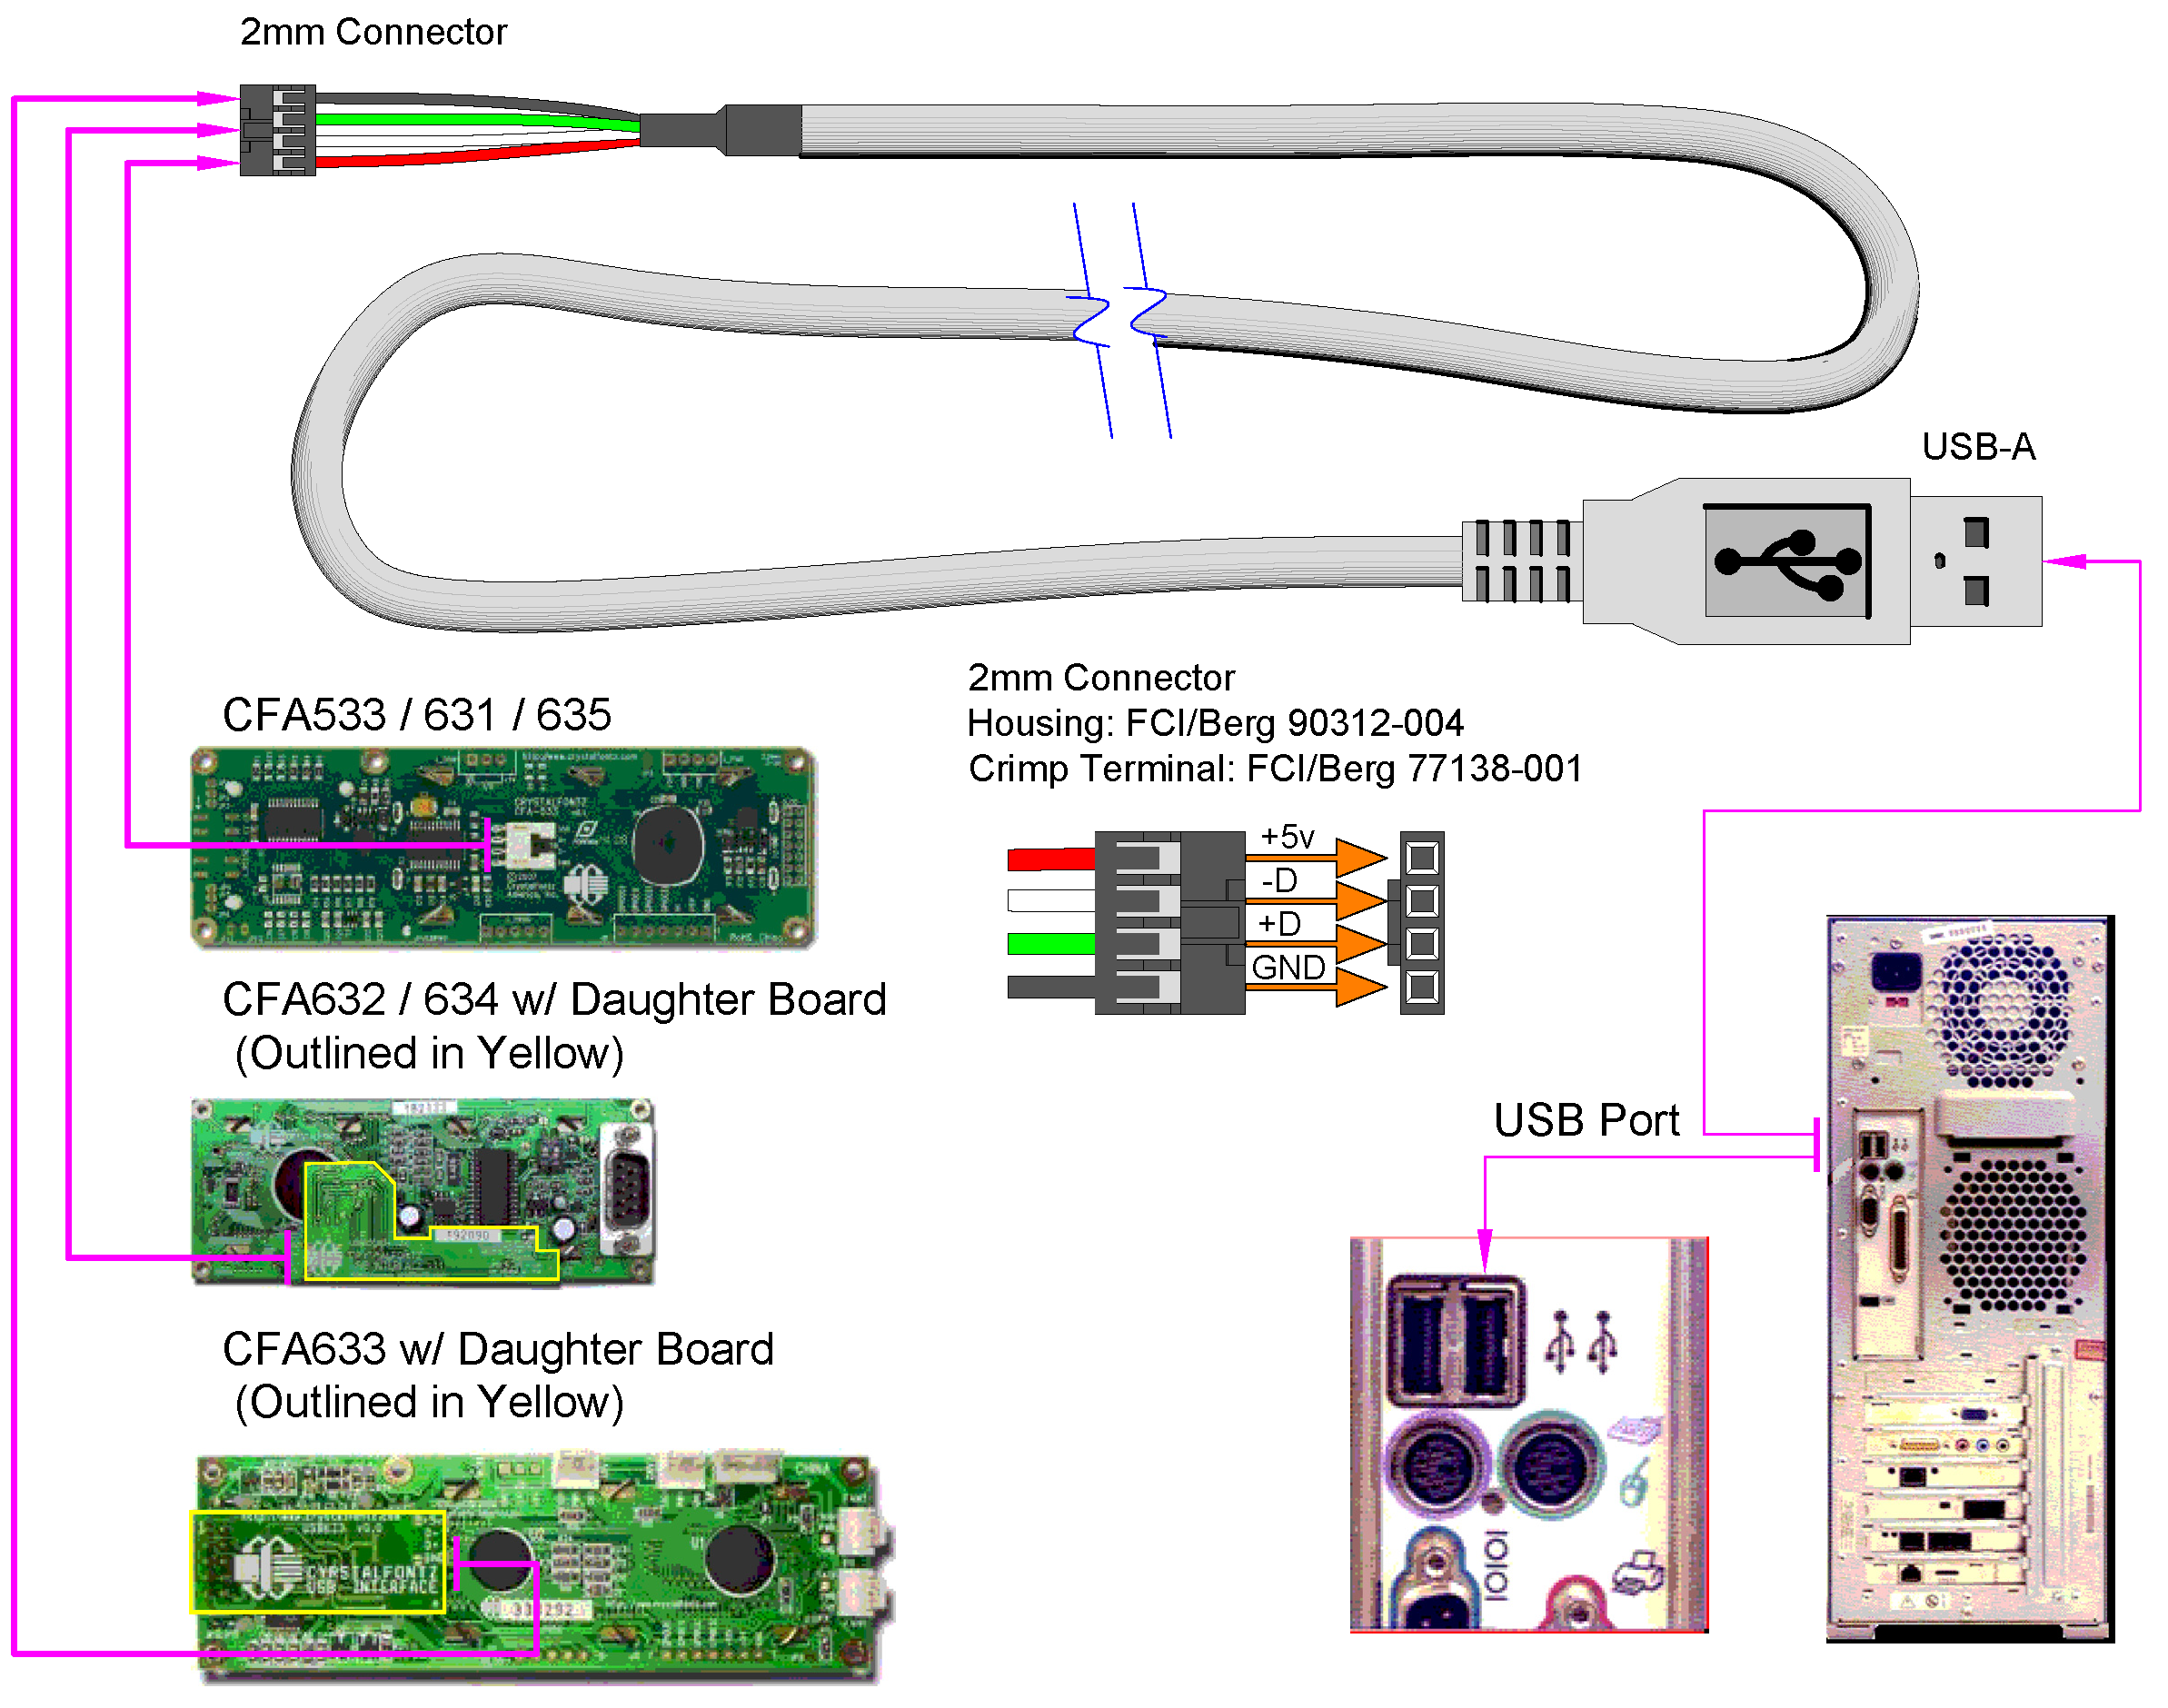 ipod usb wiring schematic usb-a to 2mm lcd cable (wrusby03) from crystalfontz